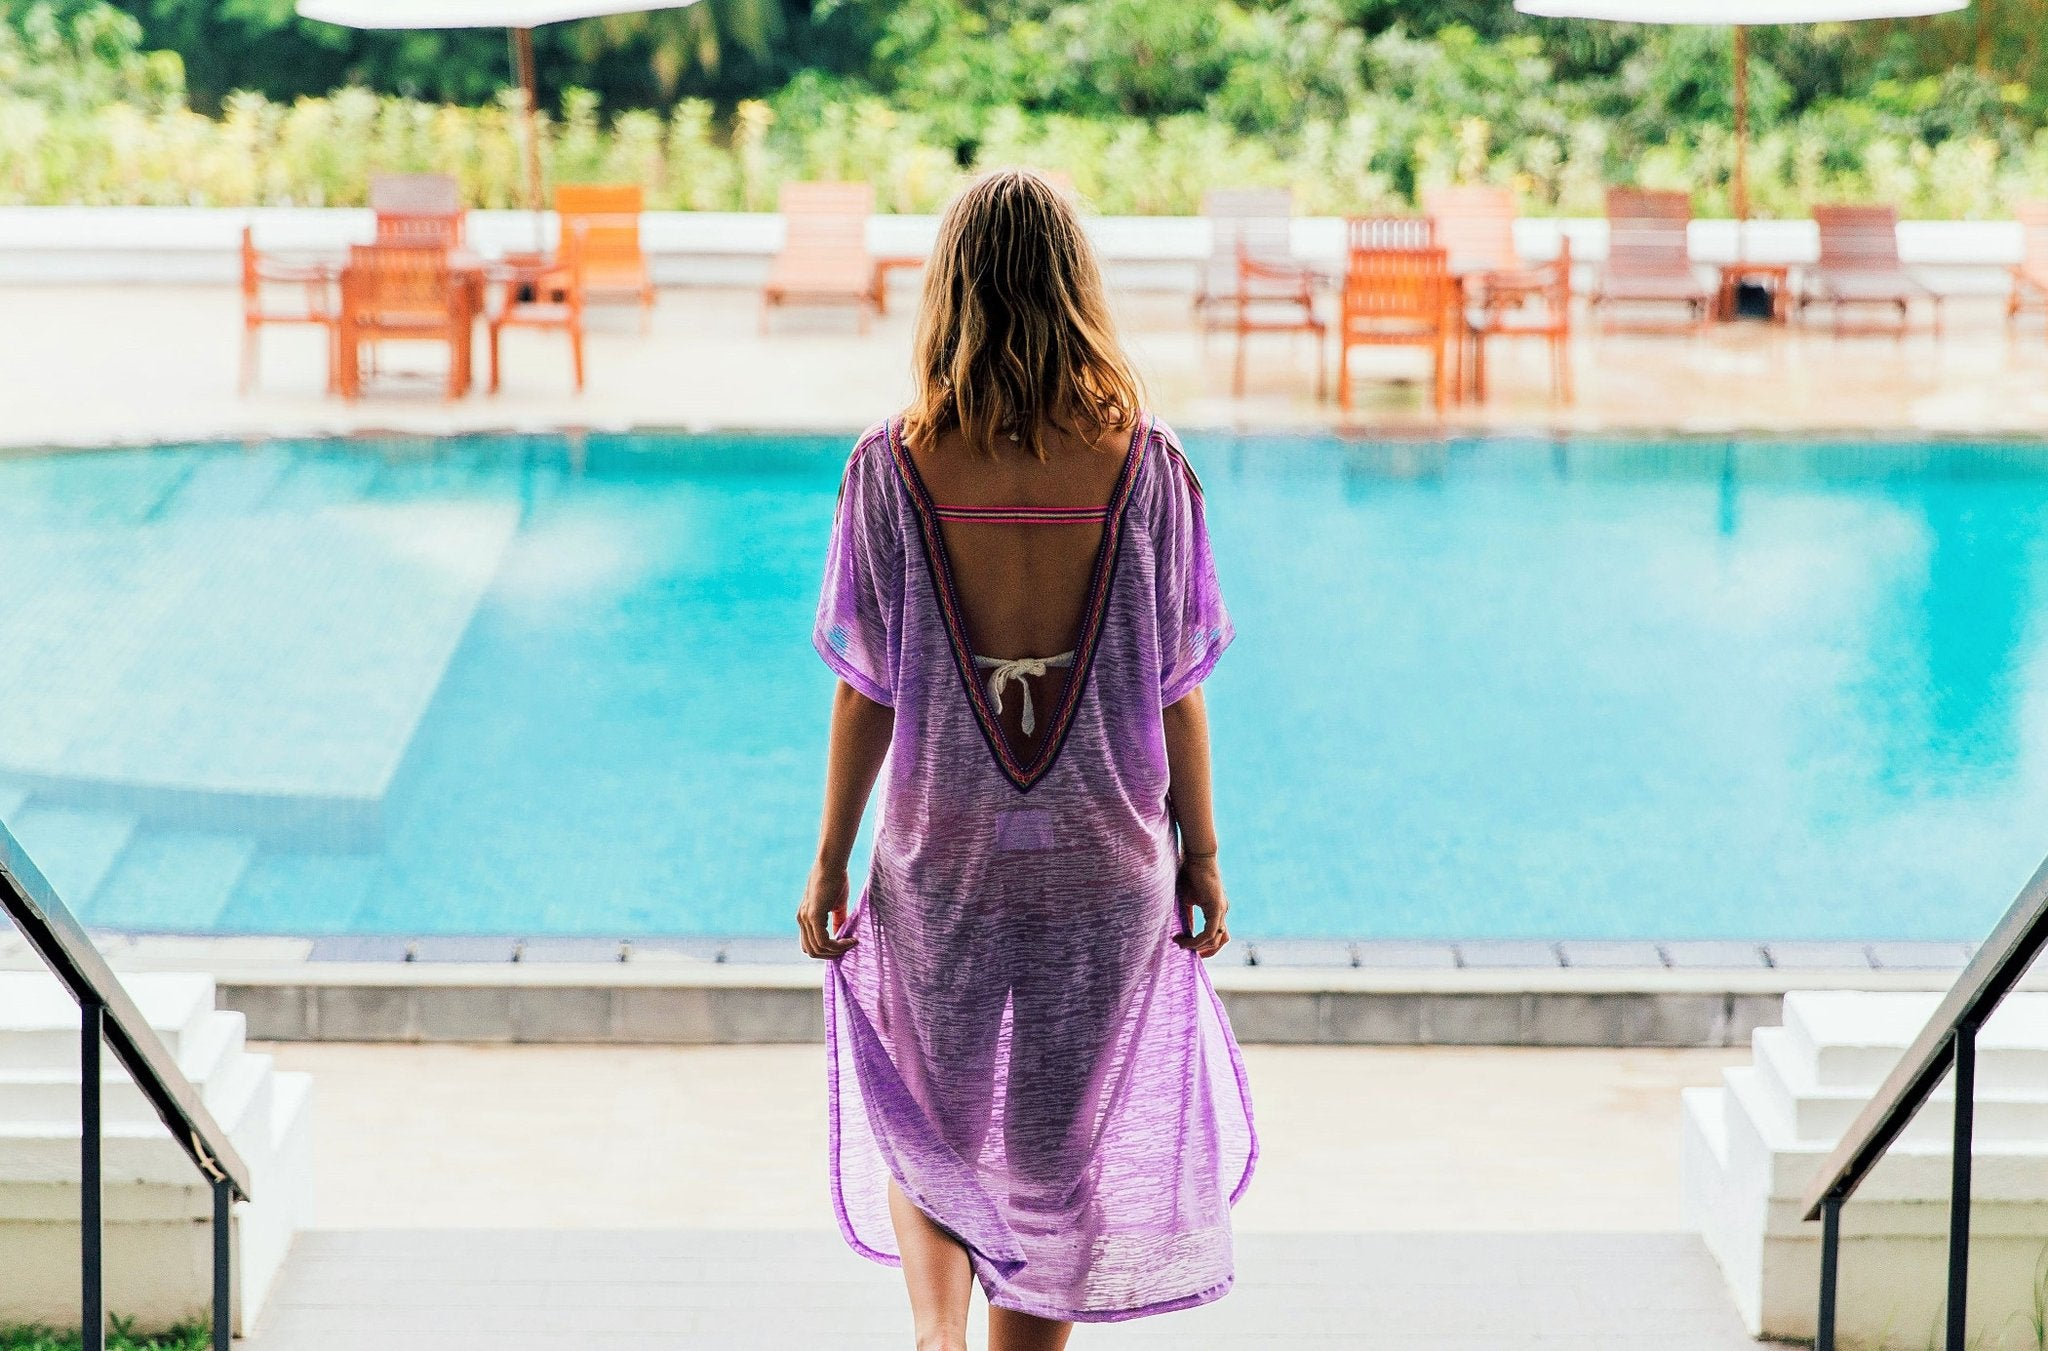 Nicola @PolkadotPassport wears Pitusa in Sri Lanka